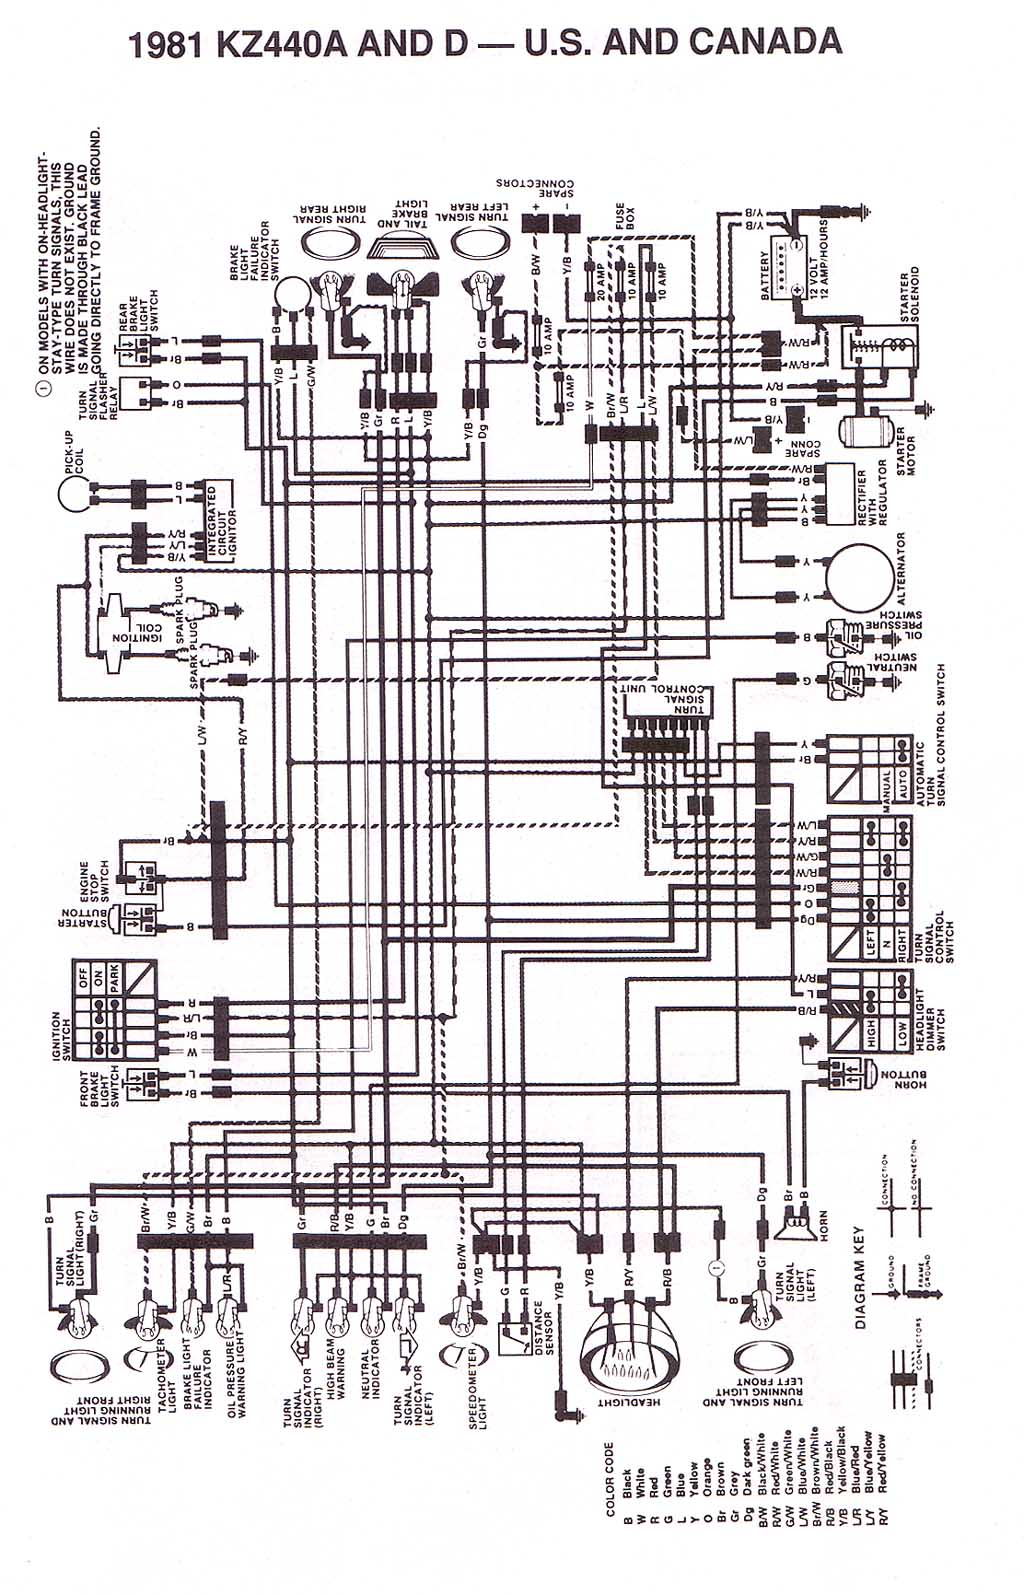 KZ440A and D wiring diagram (US) 81 kawasaki kz440 what is this darn wire 81 kz440 wiring diagram at bakdesigns.co